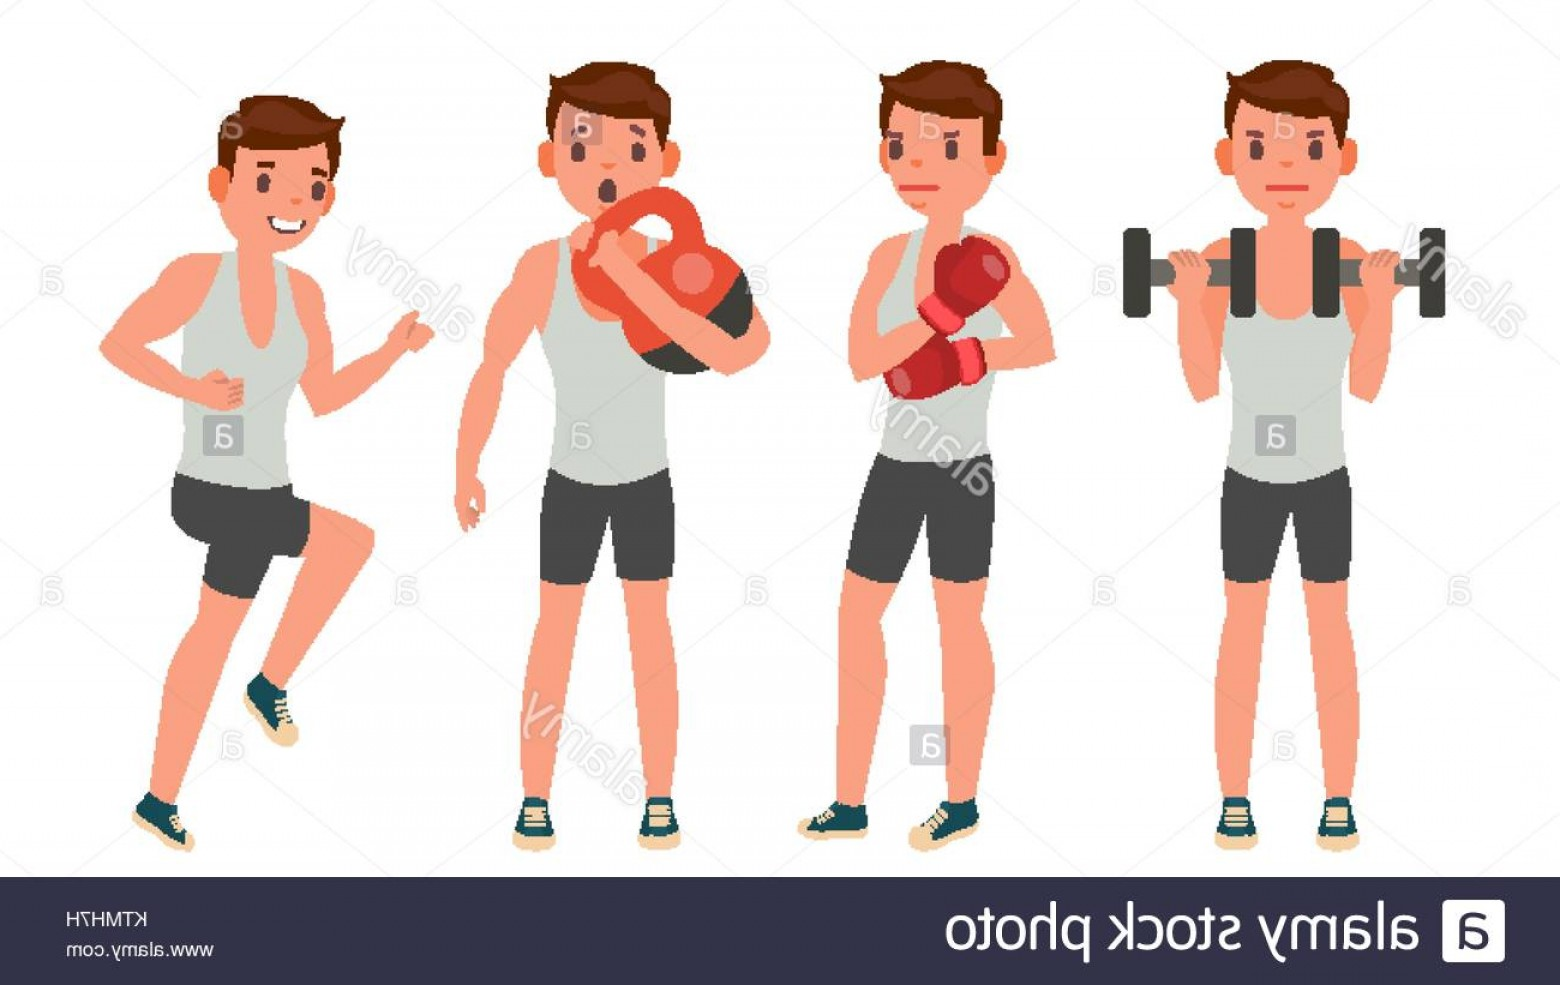 Man Vector Exercise: Stock Photo Fitness Man Vector Different Poses Work Out Active Fitness Flat Cartoon